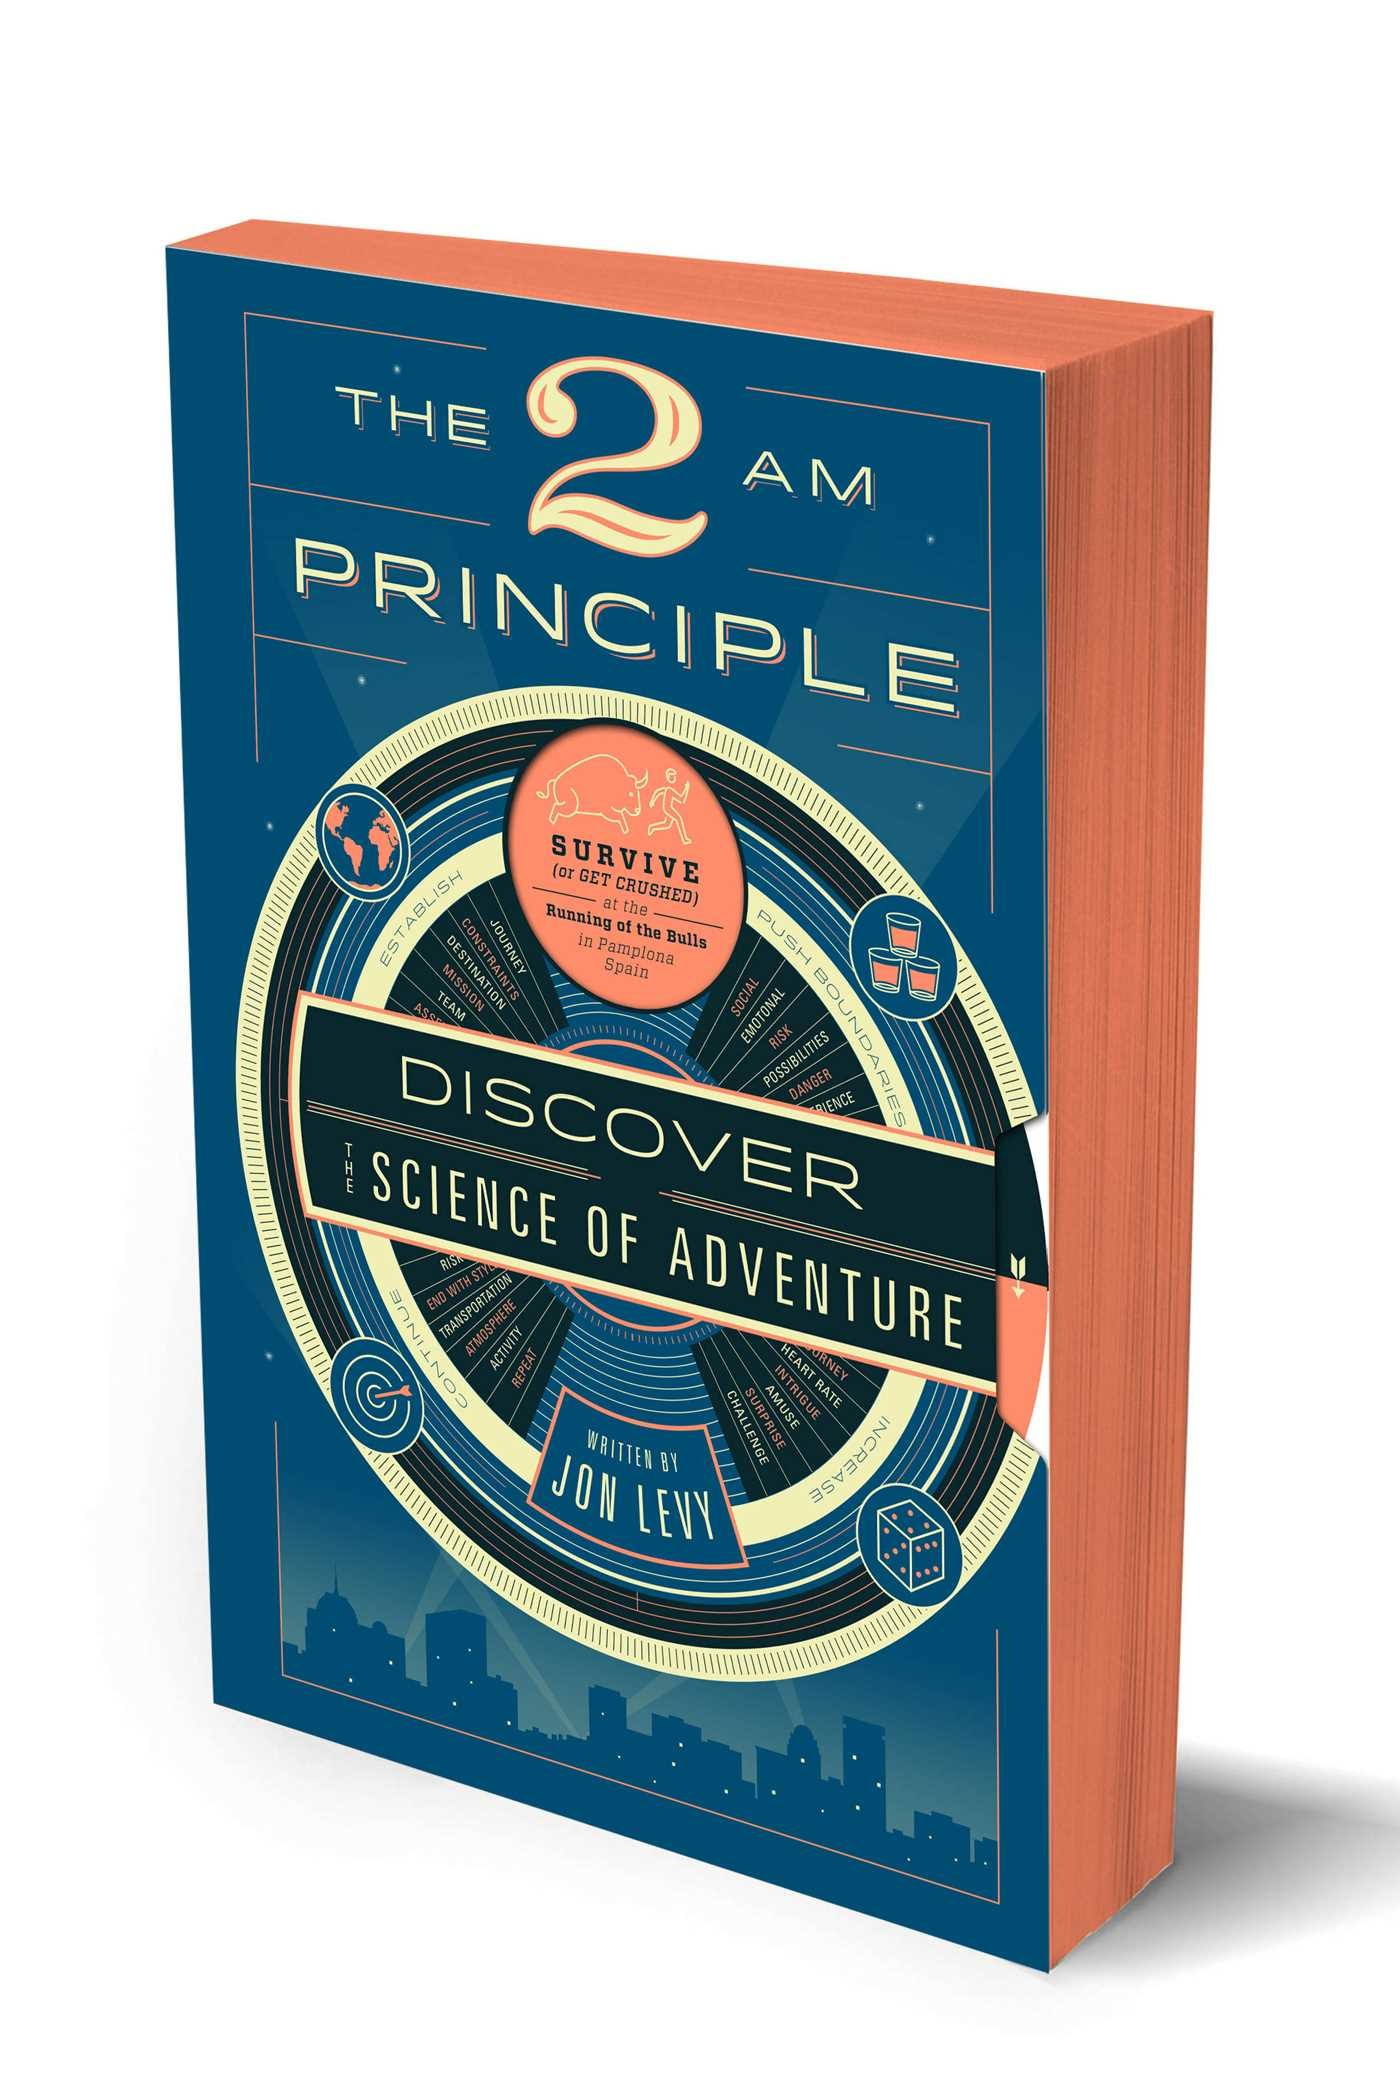 The 2 am principle 9781942872696.in01